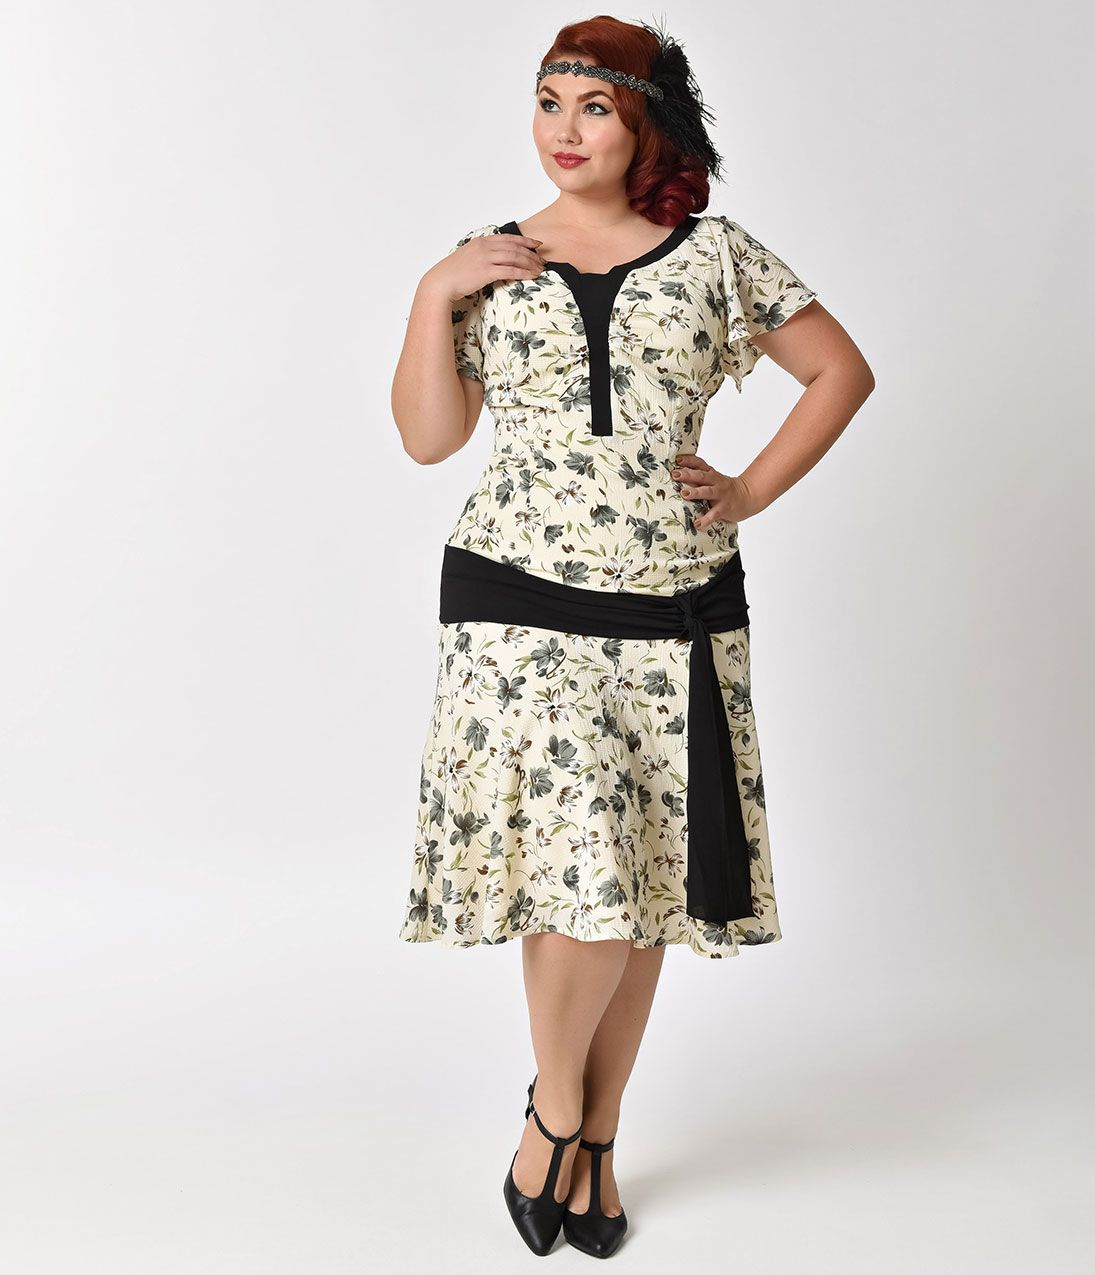 Plus Size Vintage Dresses, Plus Size Retro Dresses | Plus ...